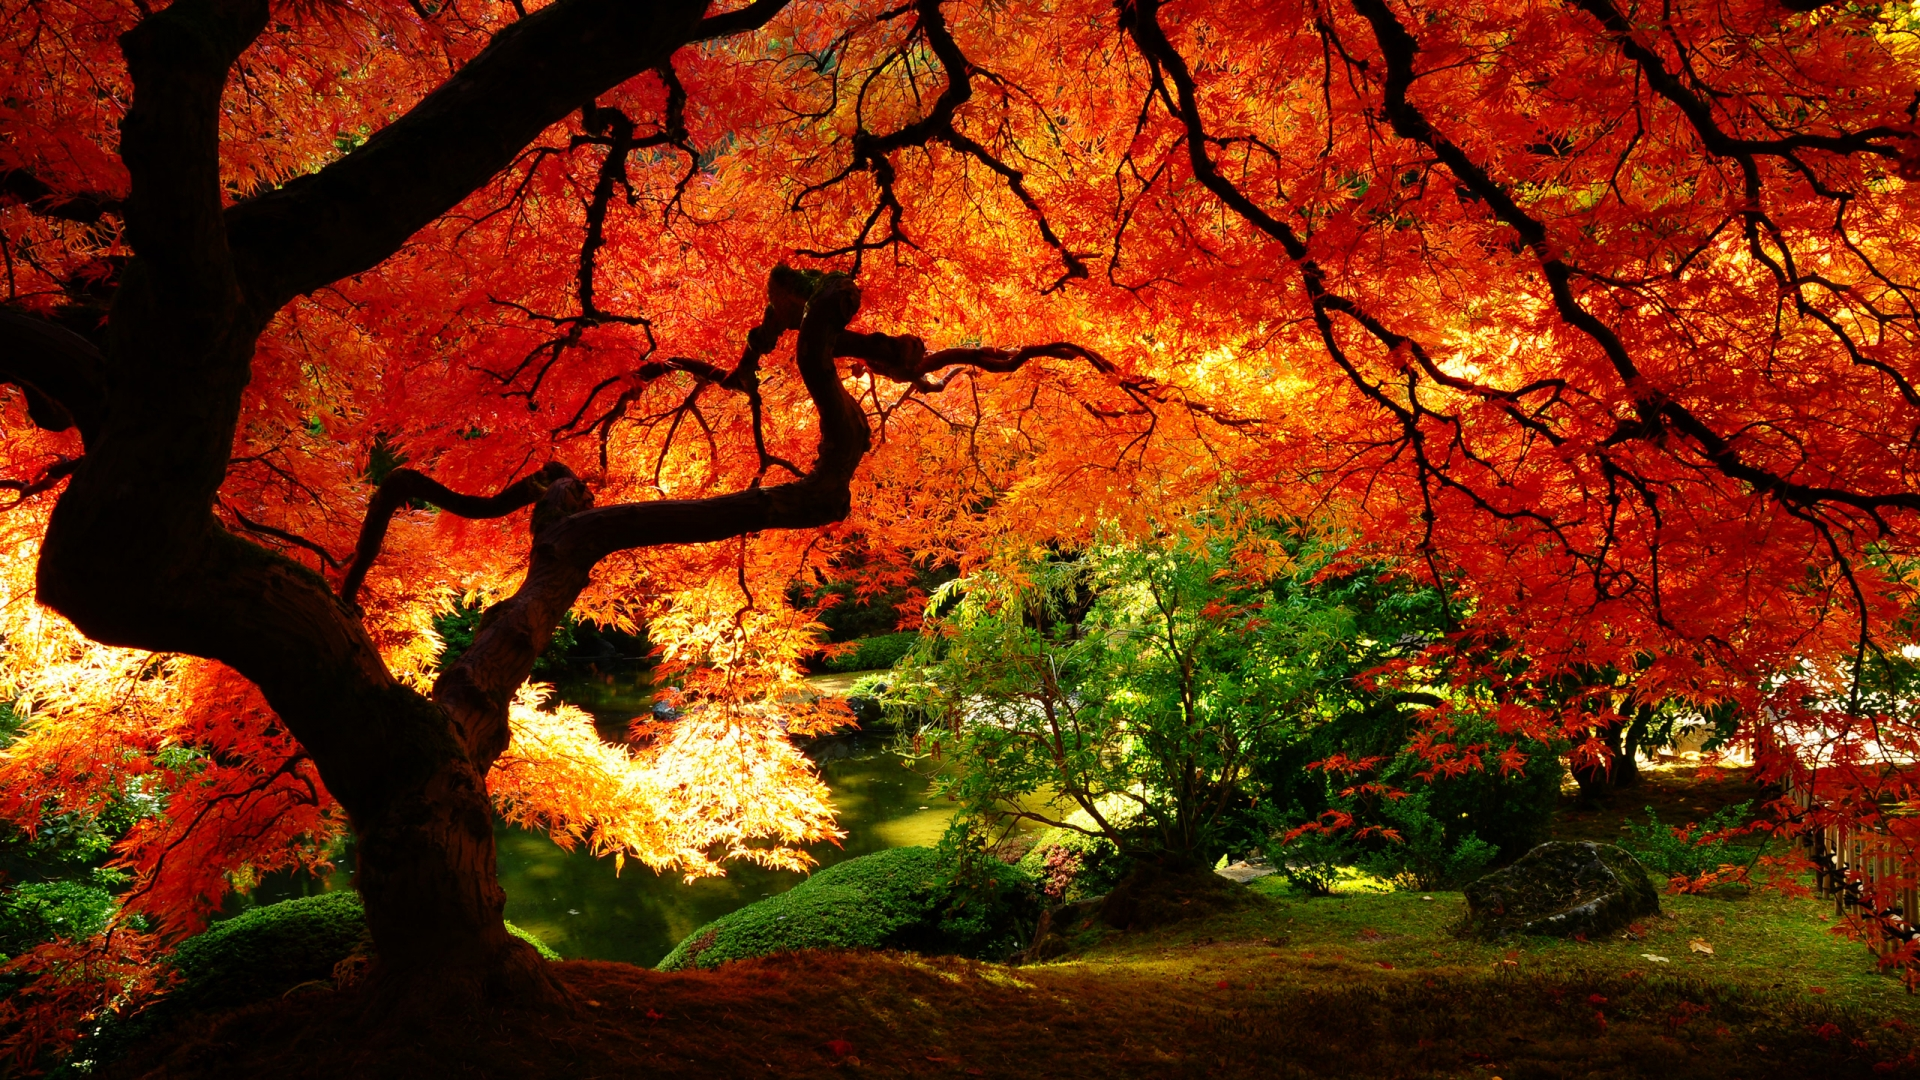 Autumn Tree wallpaper   677335 1920x1080